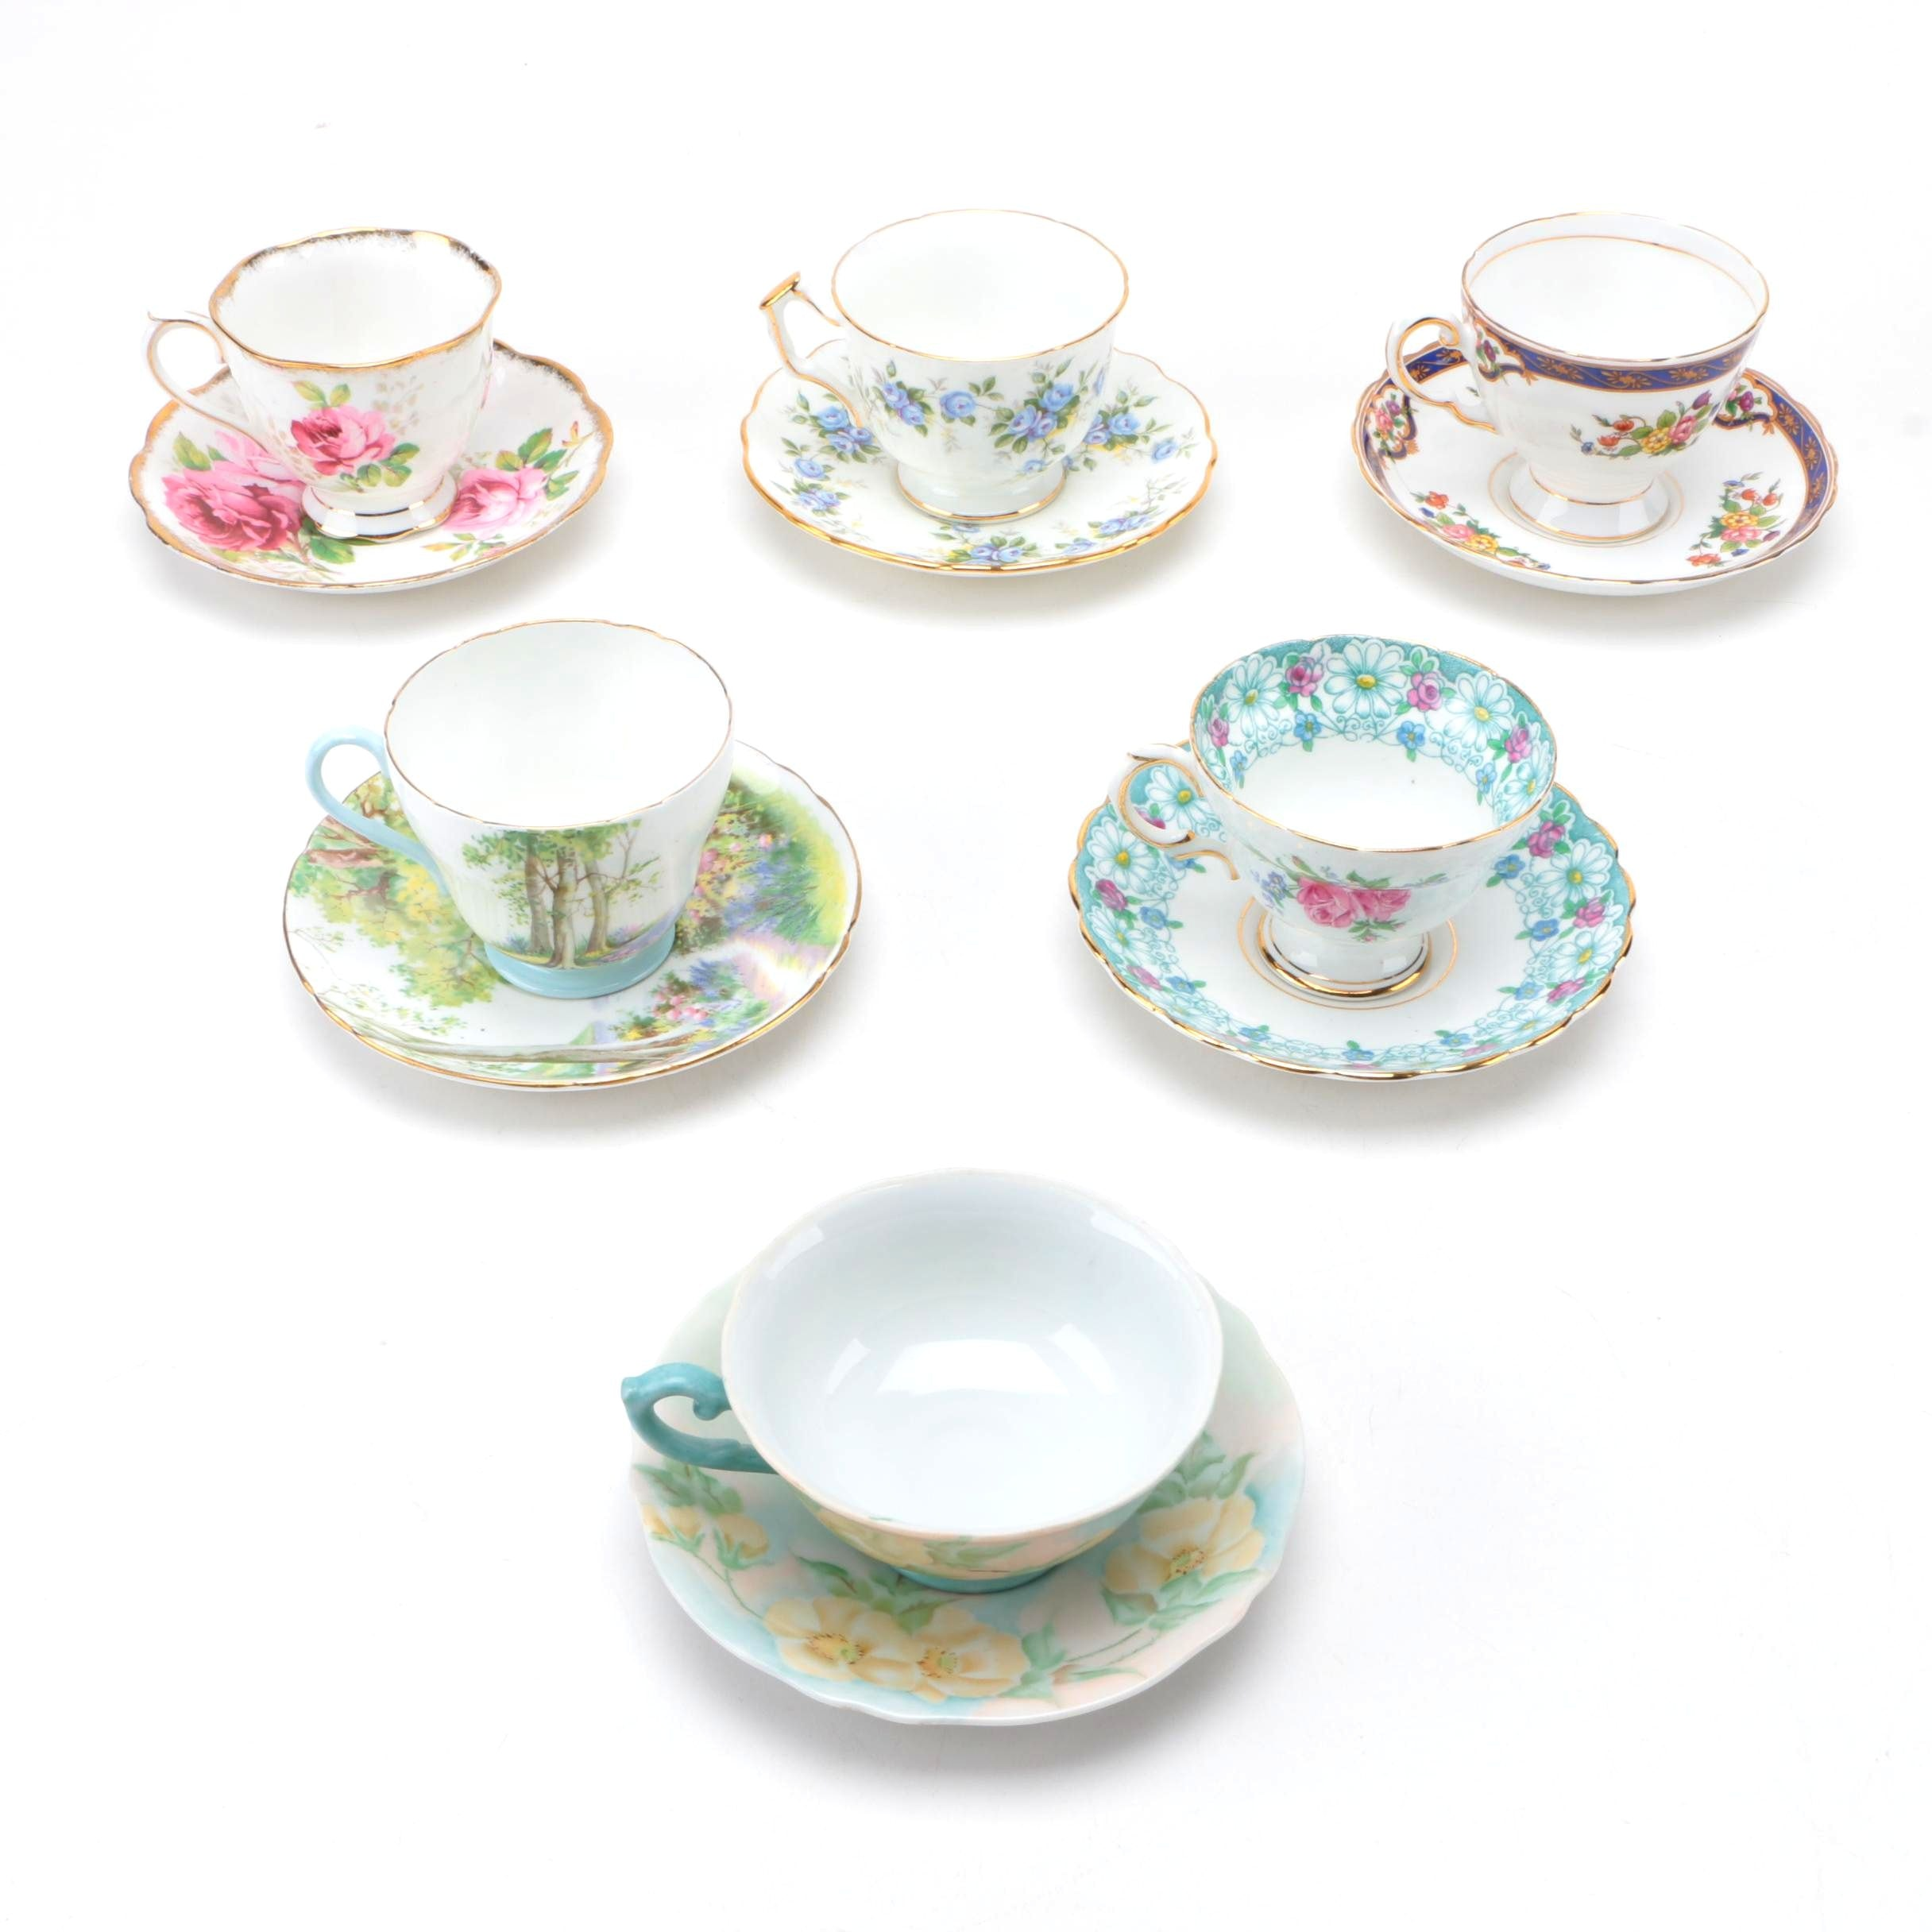 Six Sets of Porcelain Teacups and Saucers